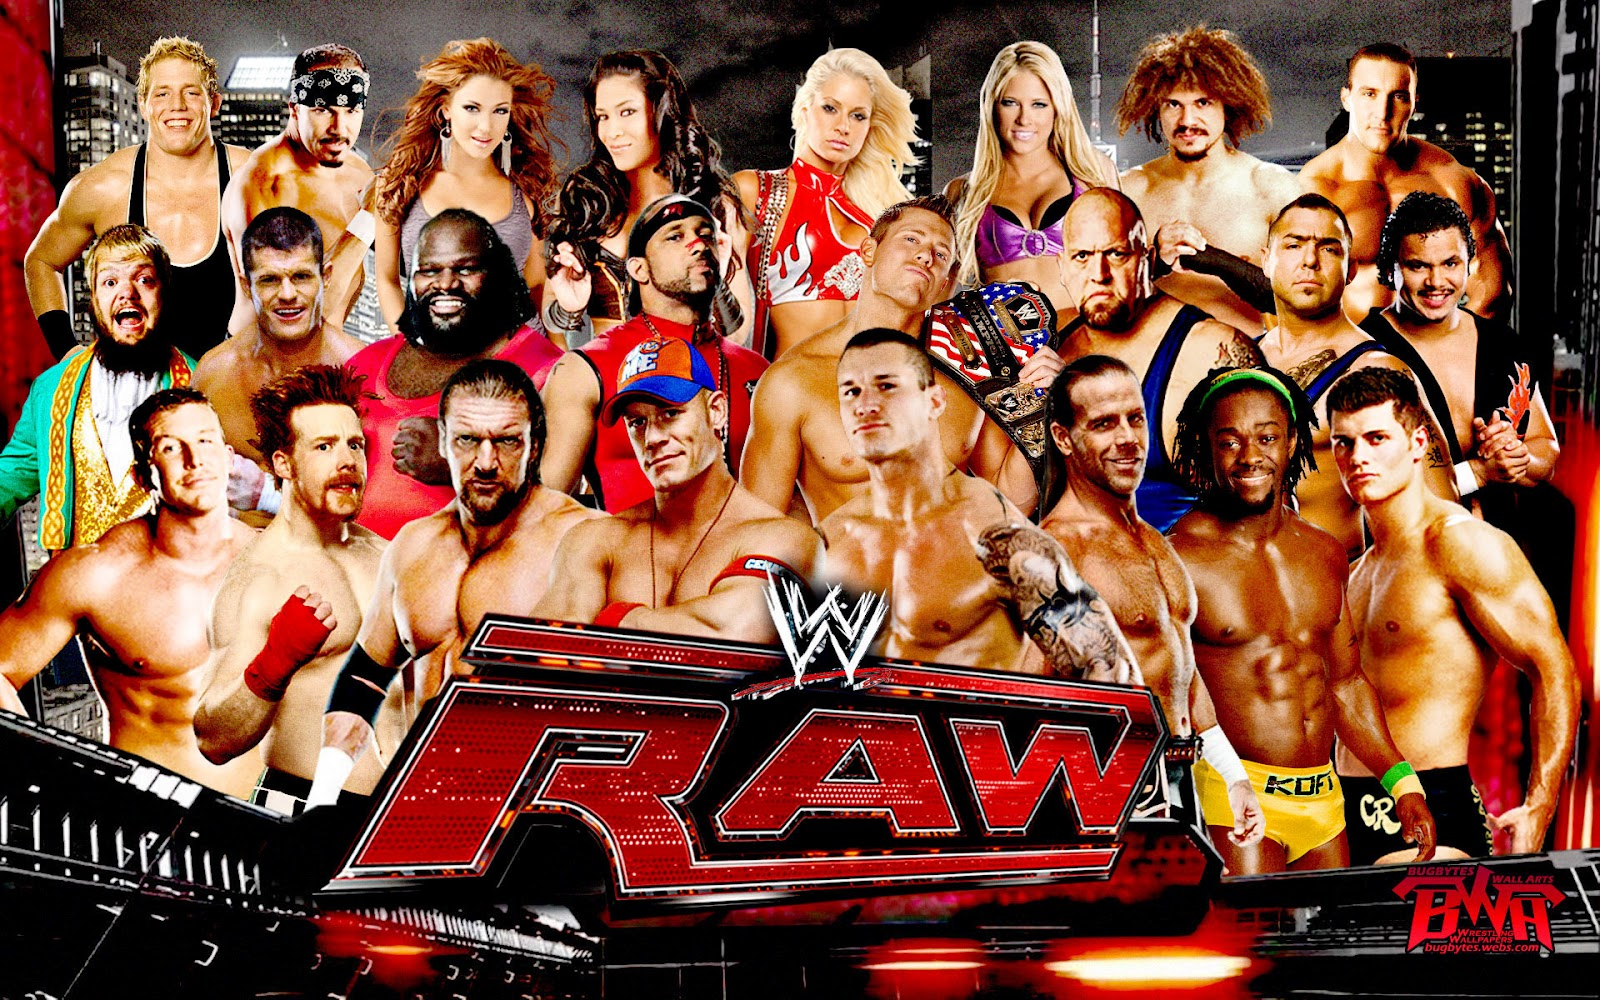 WWE RAW Judgement Day Total Edition PC Game Full Version